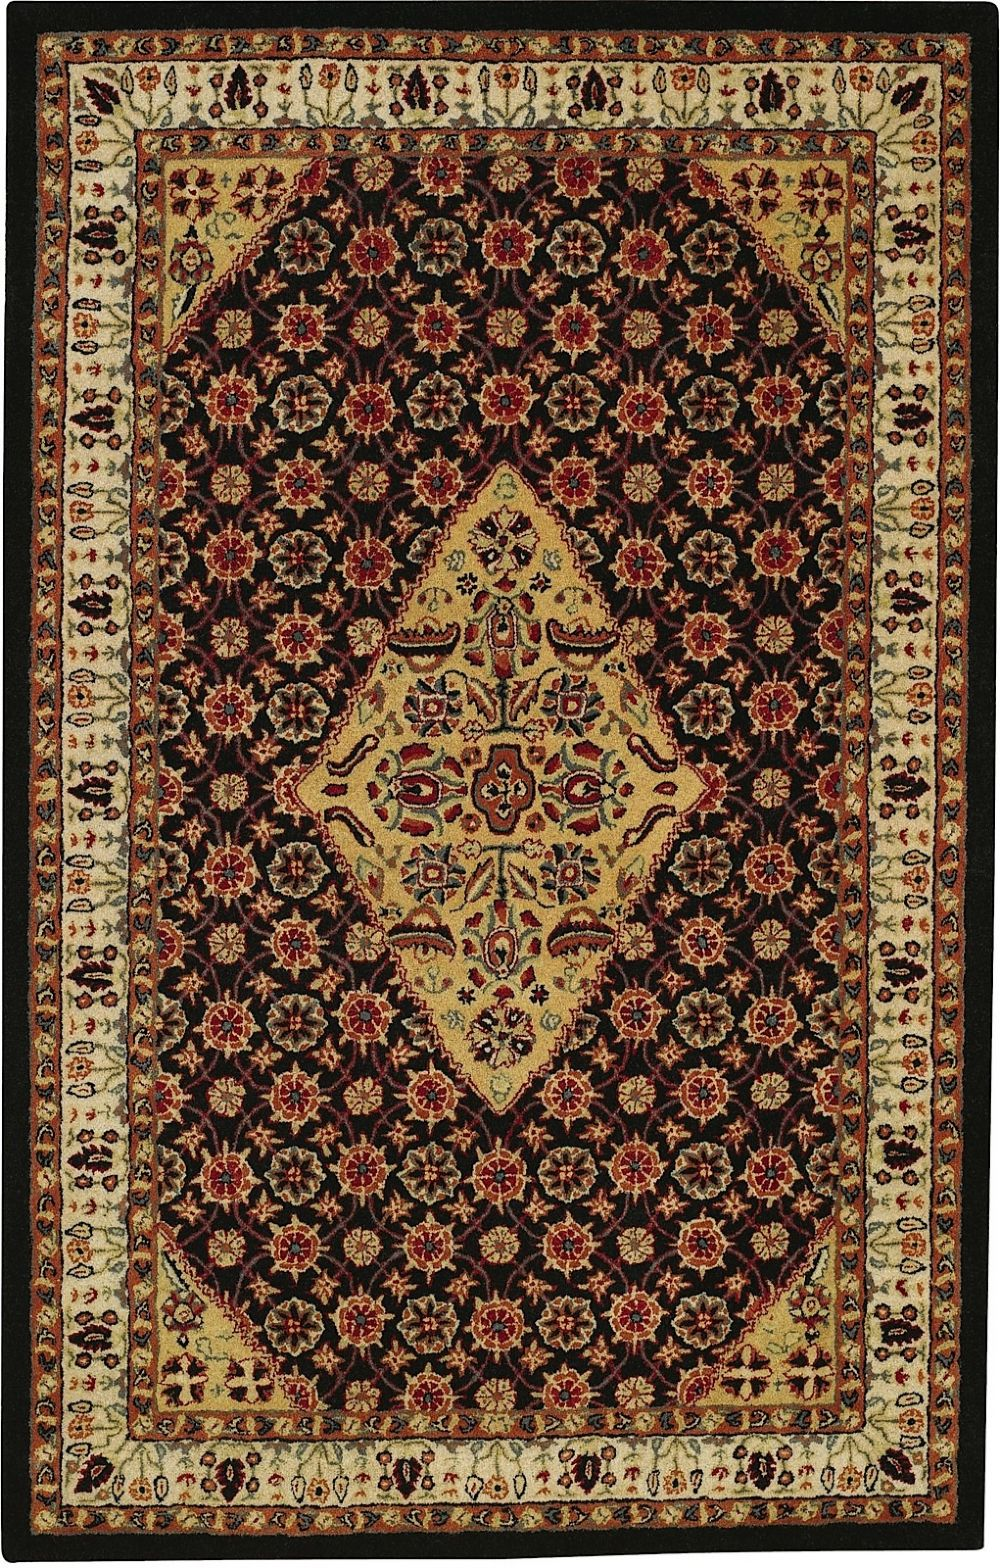 capel stone manor-veramin european area rug collection